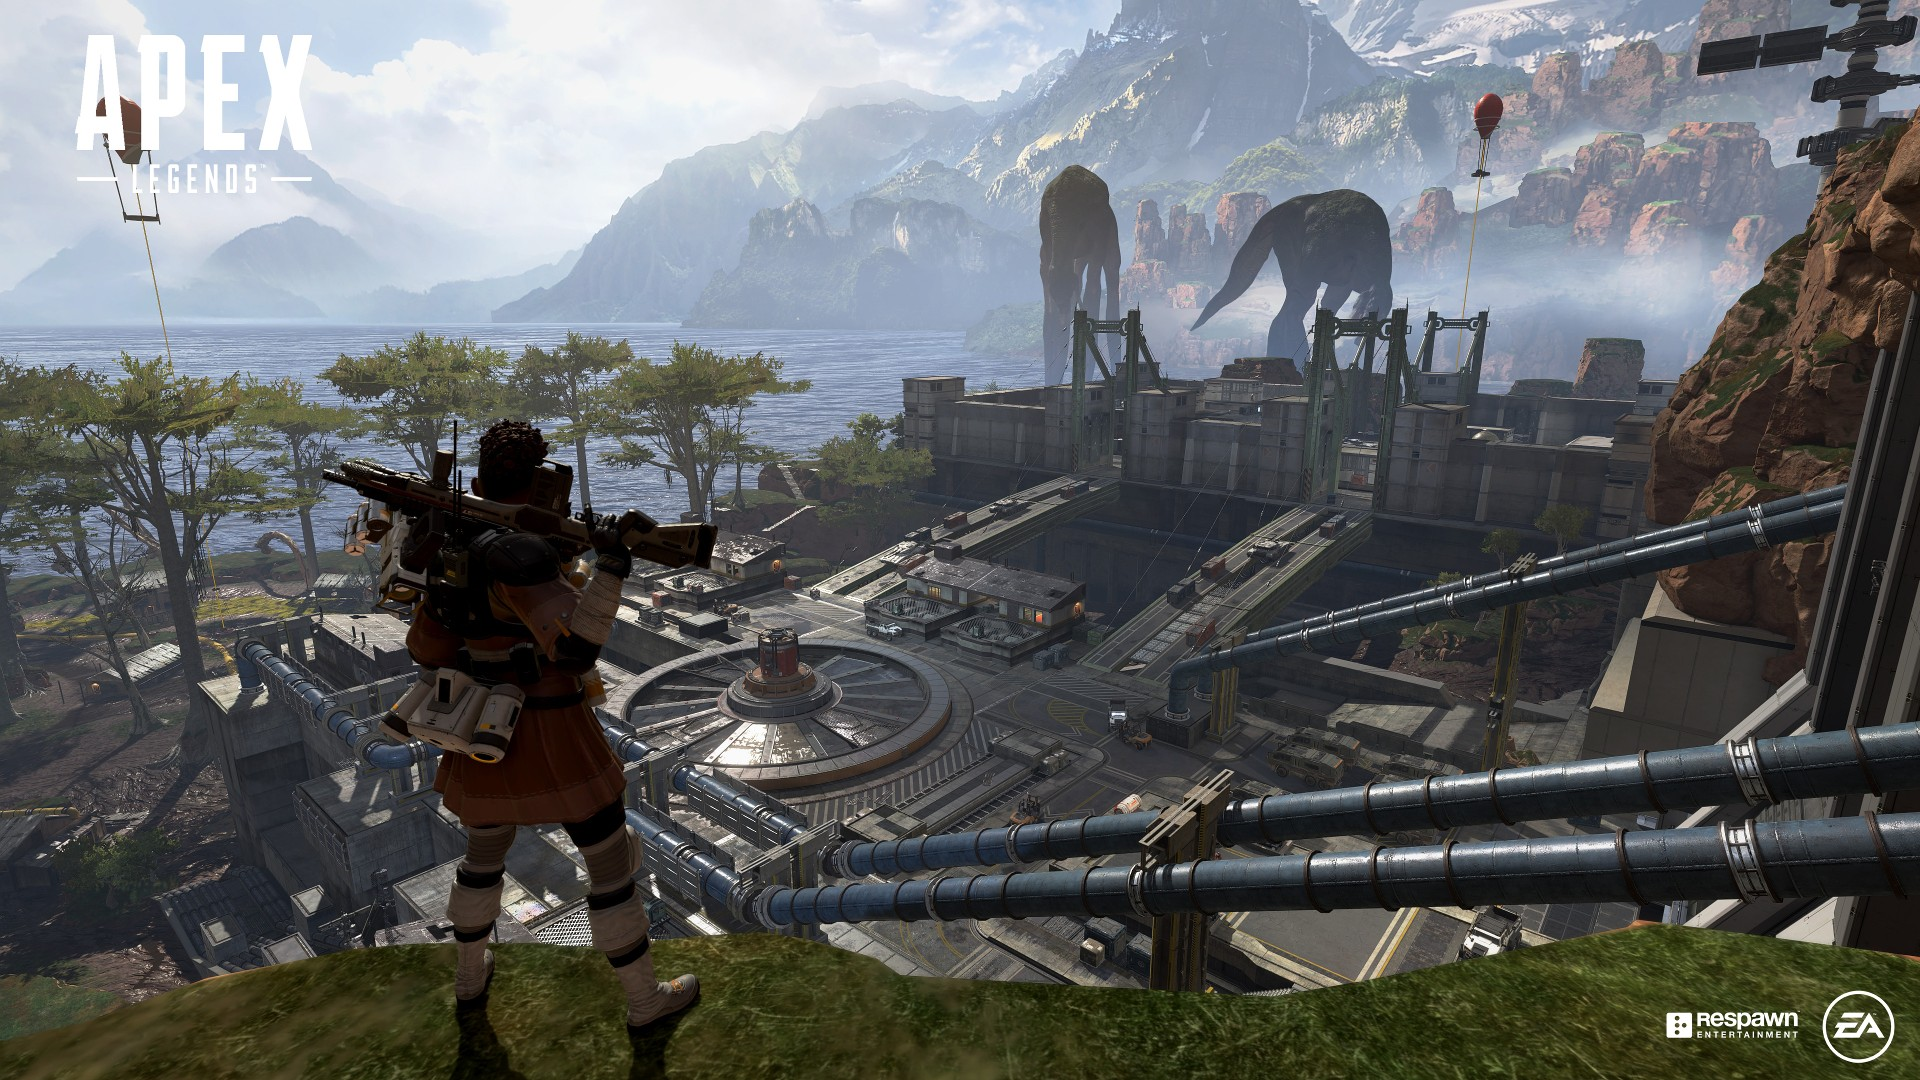 apex legends, download, play